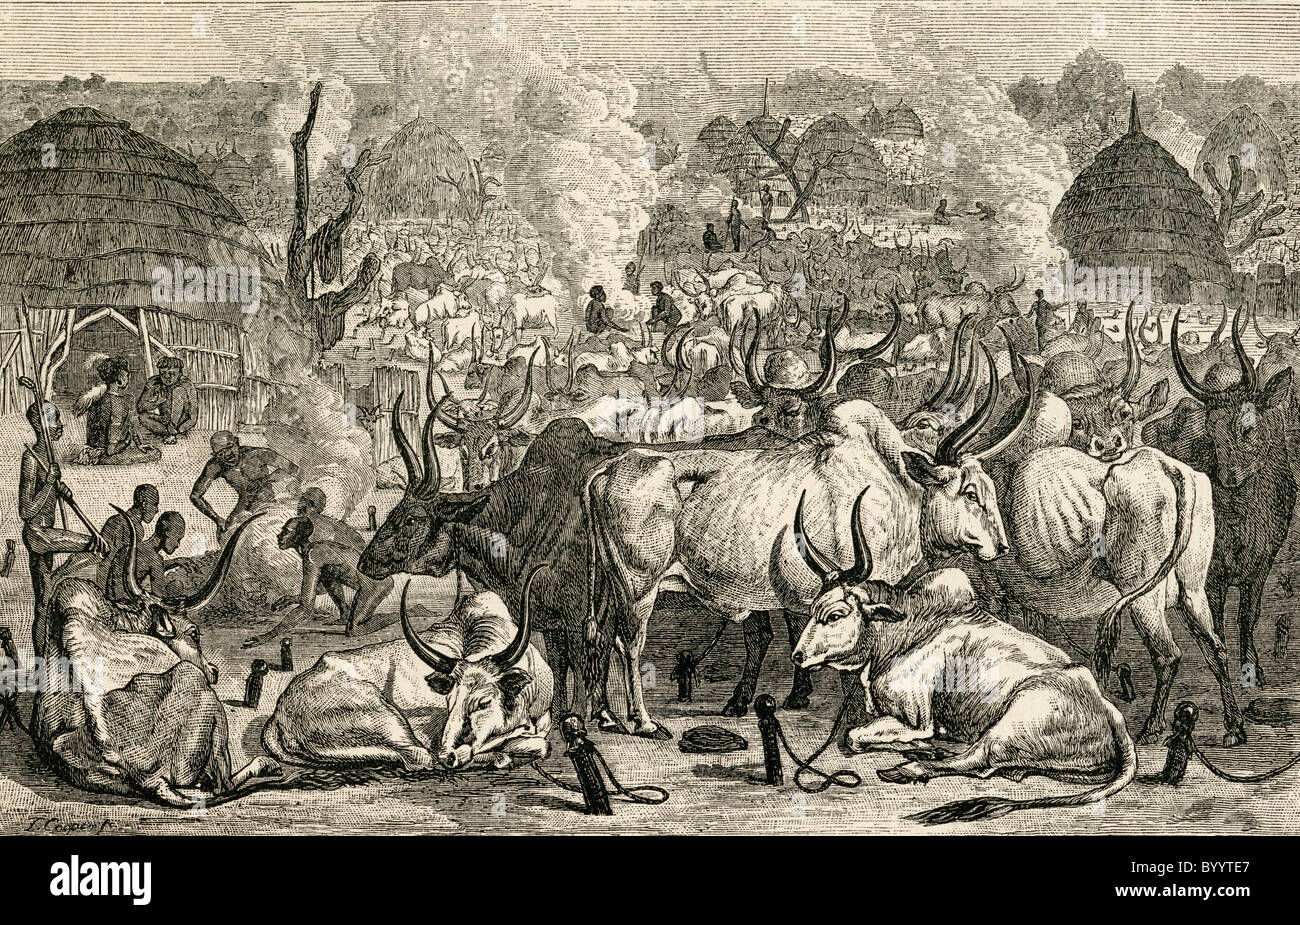 A Dinka cattle park, Southern Sudan, Africa in the 19th century. - Stock Image